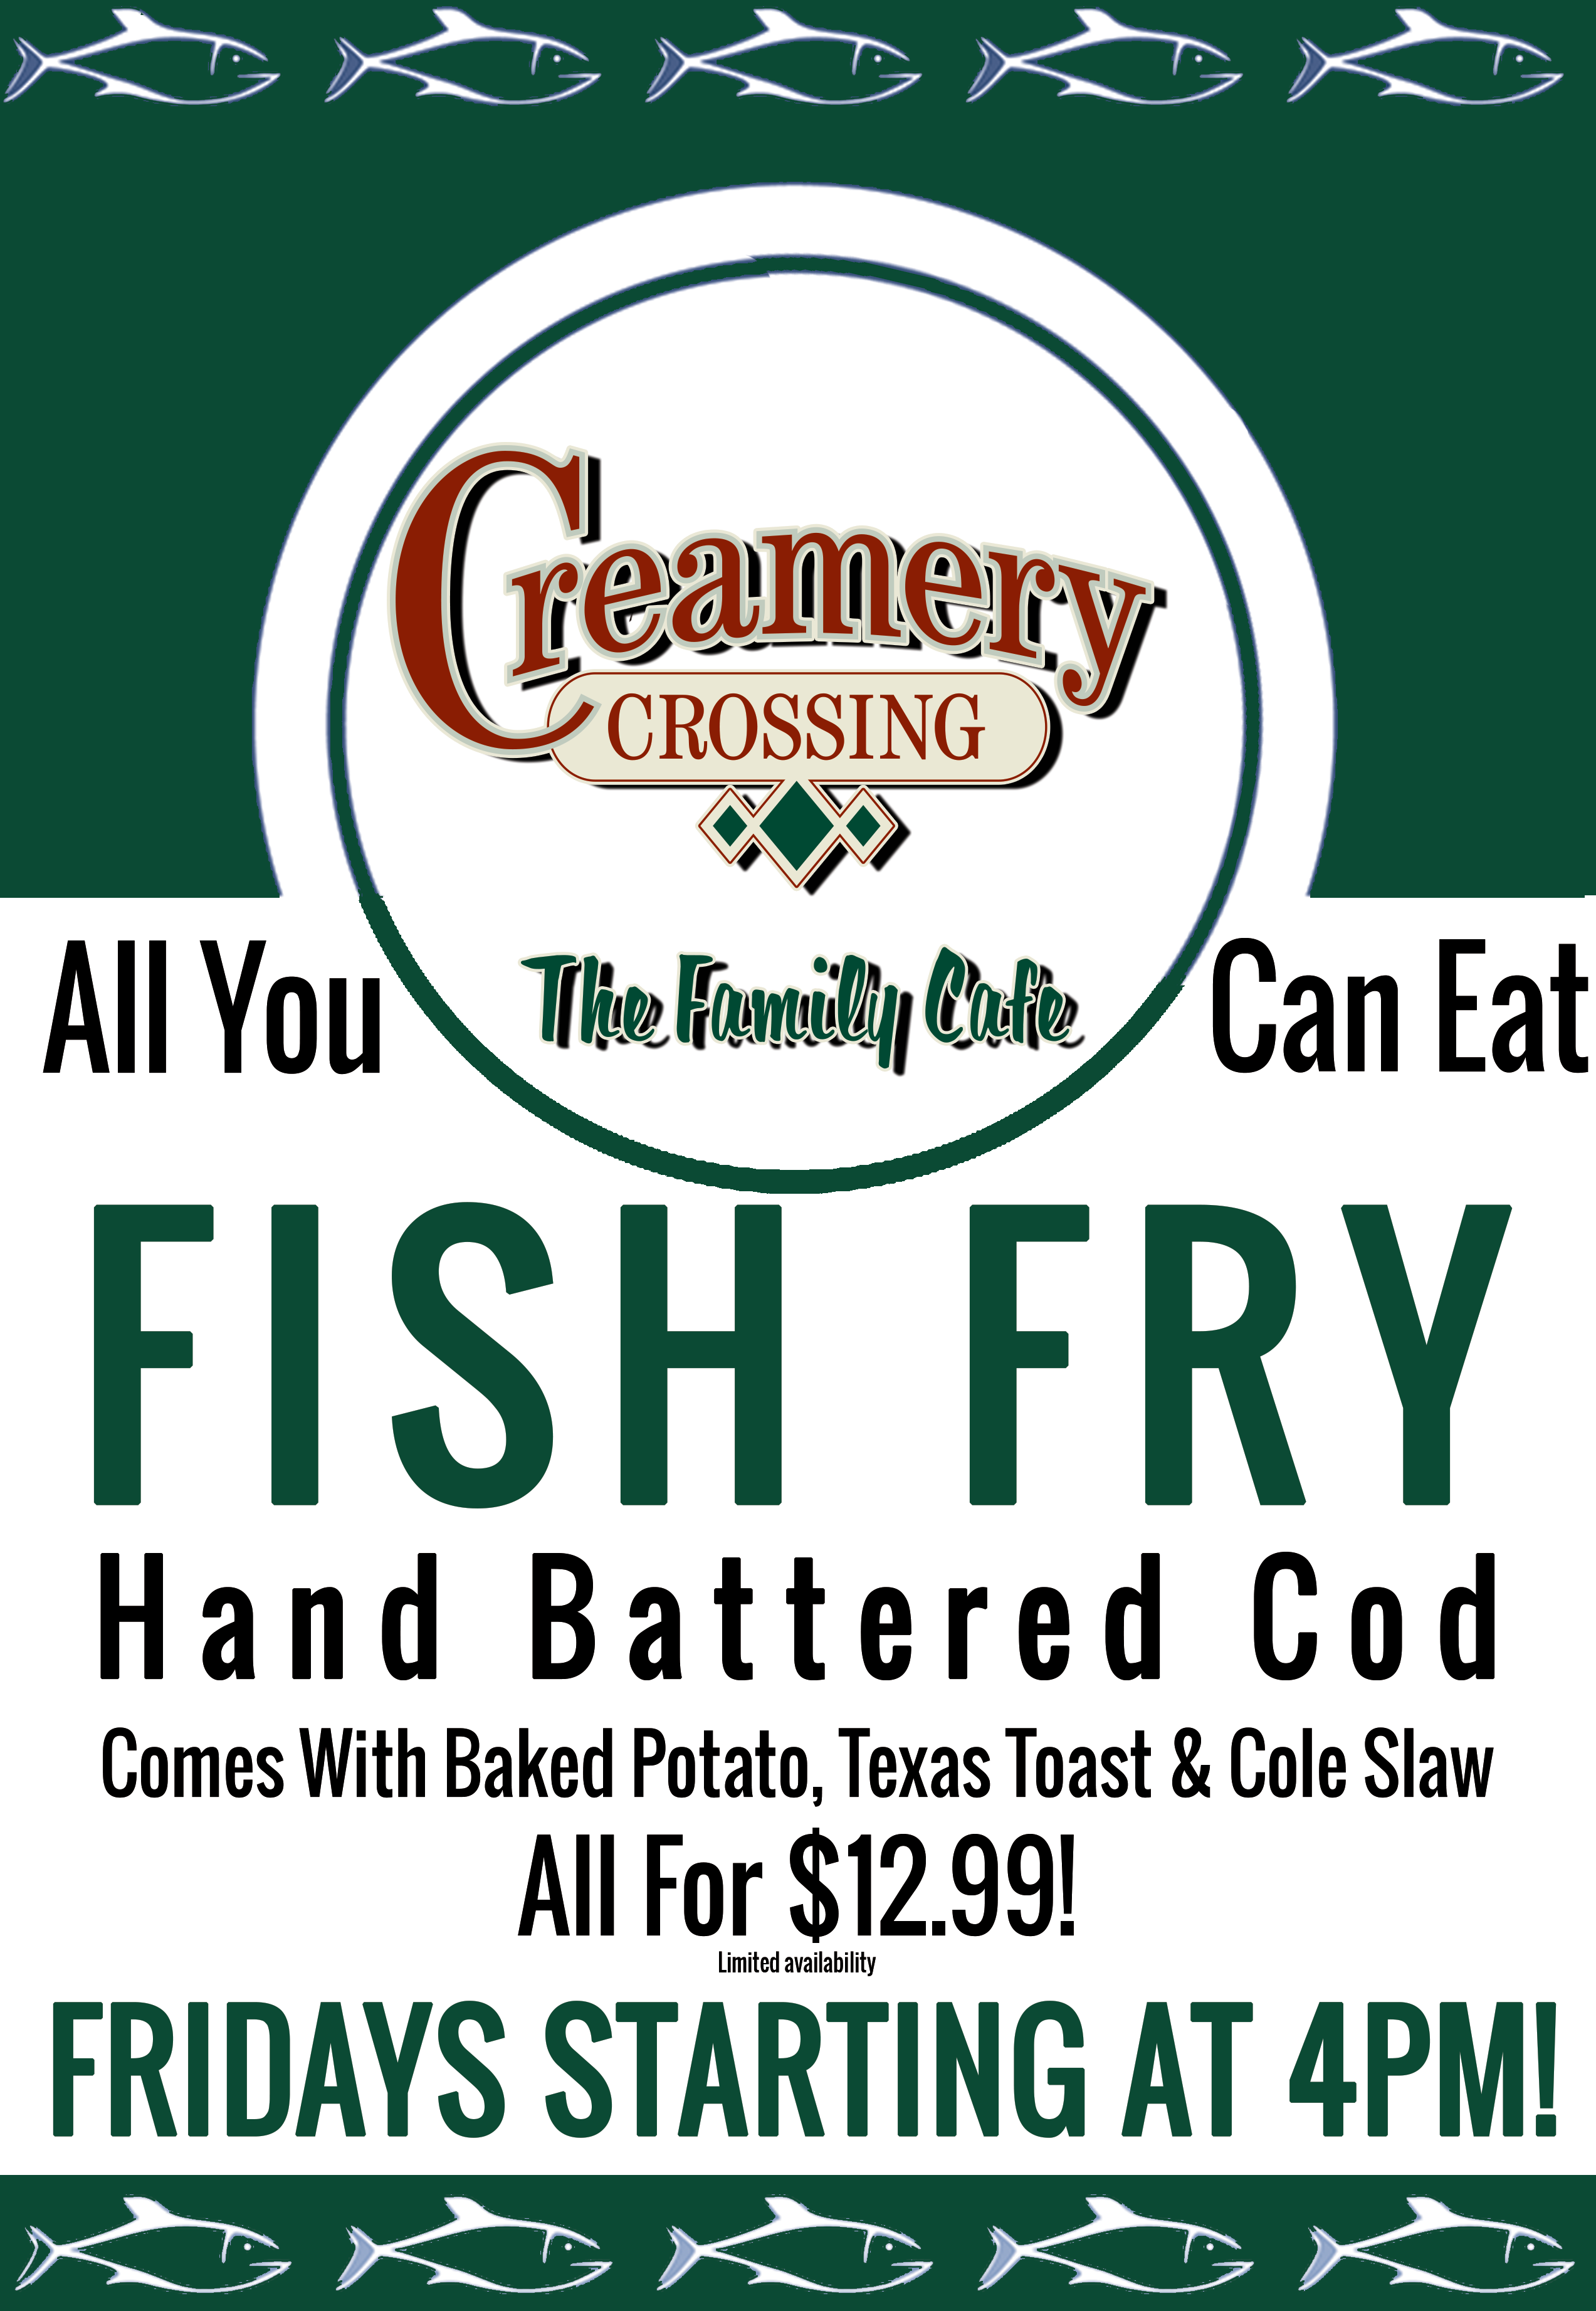 Creamery crossing best stop in isanti mn for All you can eat fish